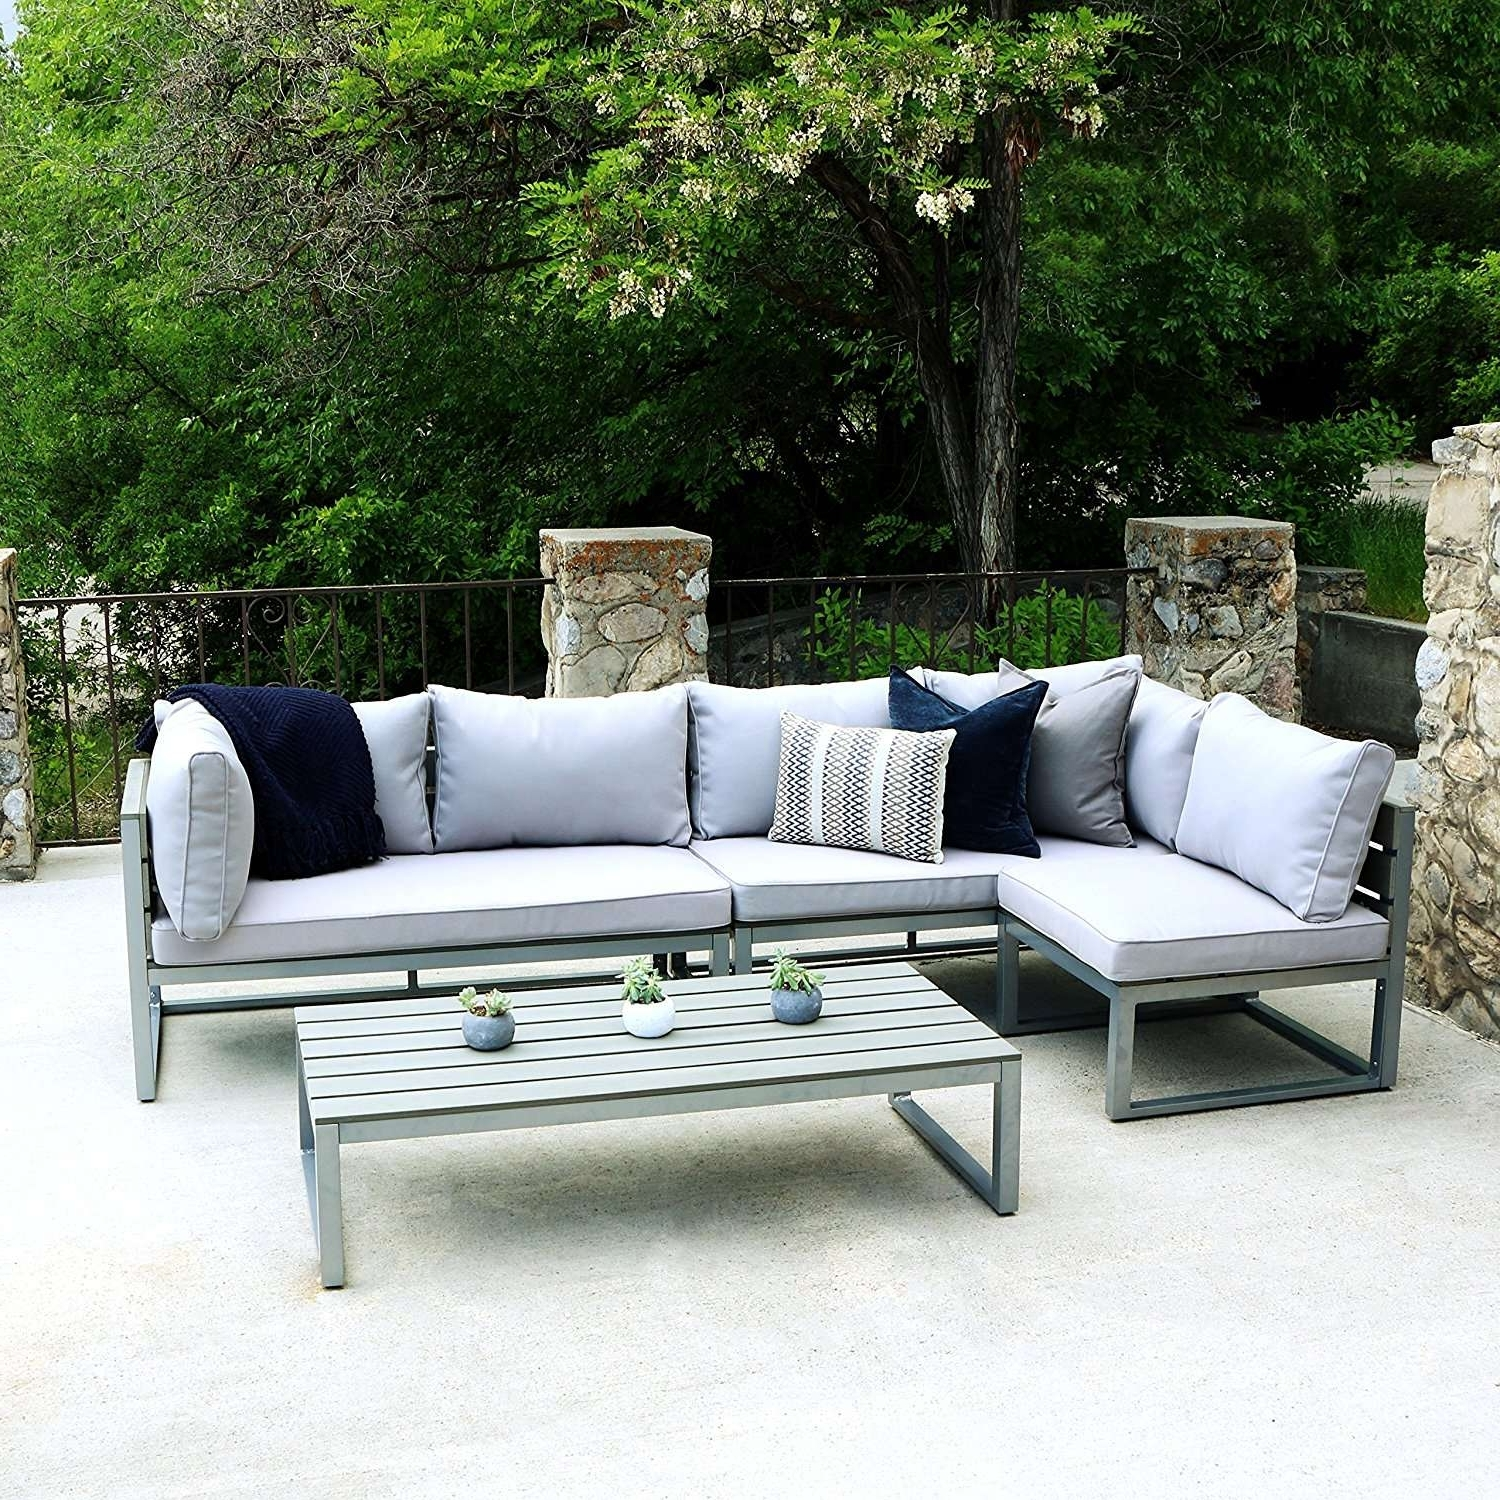 Round Patio Conversation Sets Throughout Famous Conversation Sets Outdoor Sectional Seating Round Patio Concept Of (View 16 of 20)